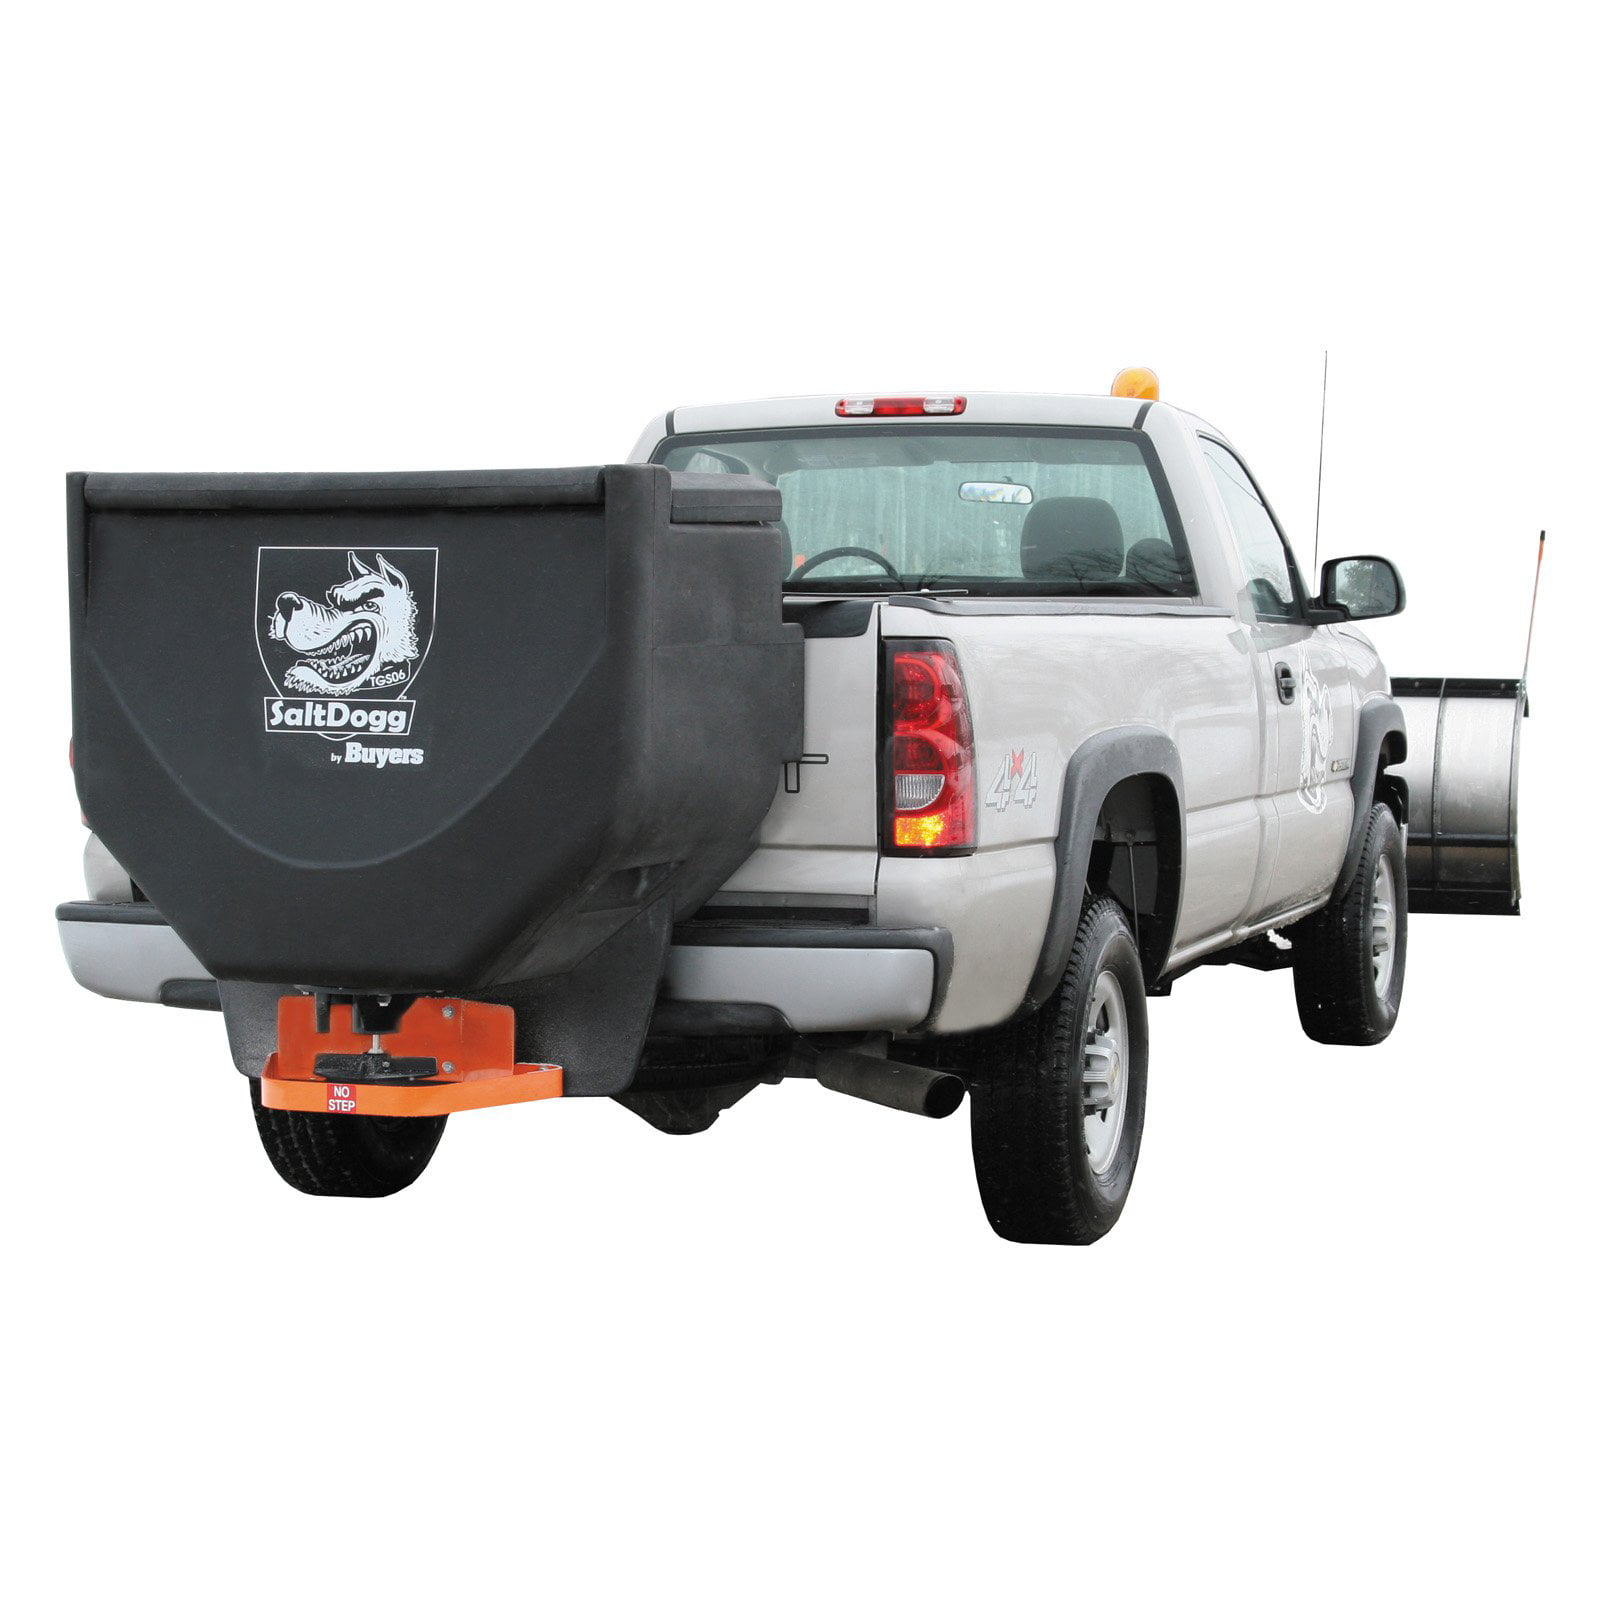 SaltDogg Electric Polymer 52-in. Tailgate Spreader by BUYERS PRODUCTS